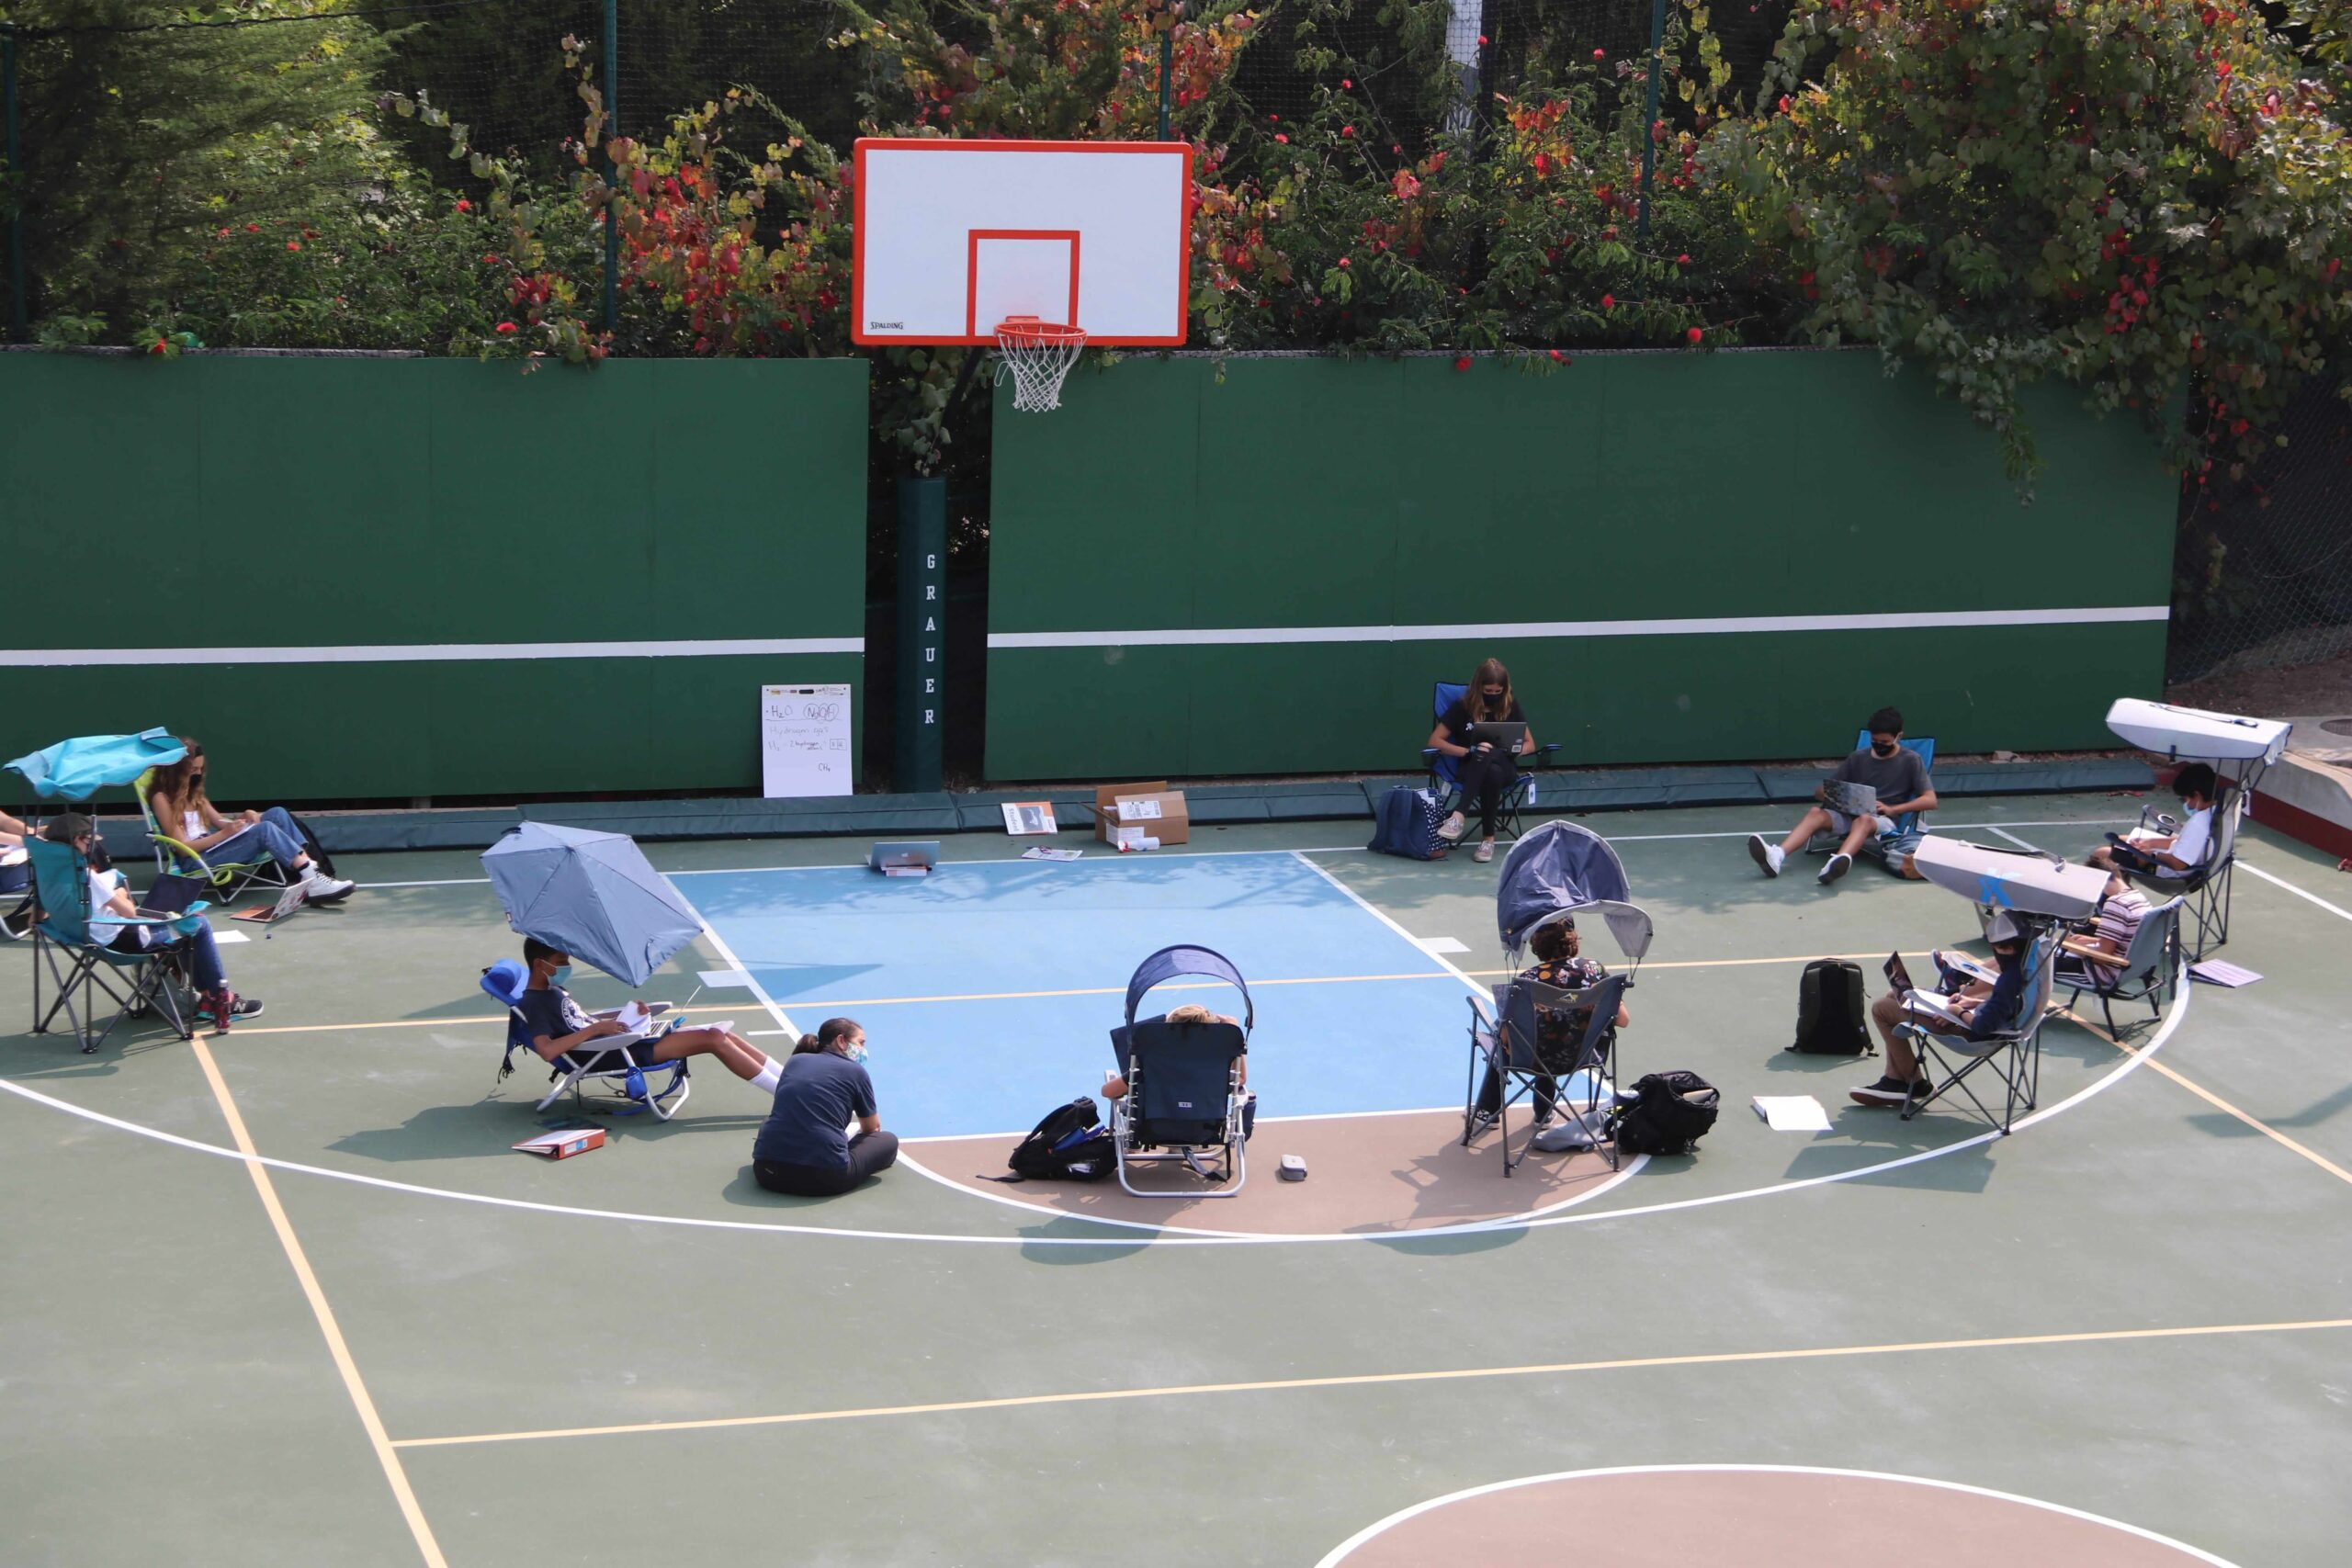 a tennis court study session at the grauer school in encinitas california during COVID-19 pandemic